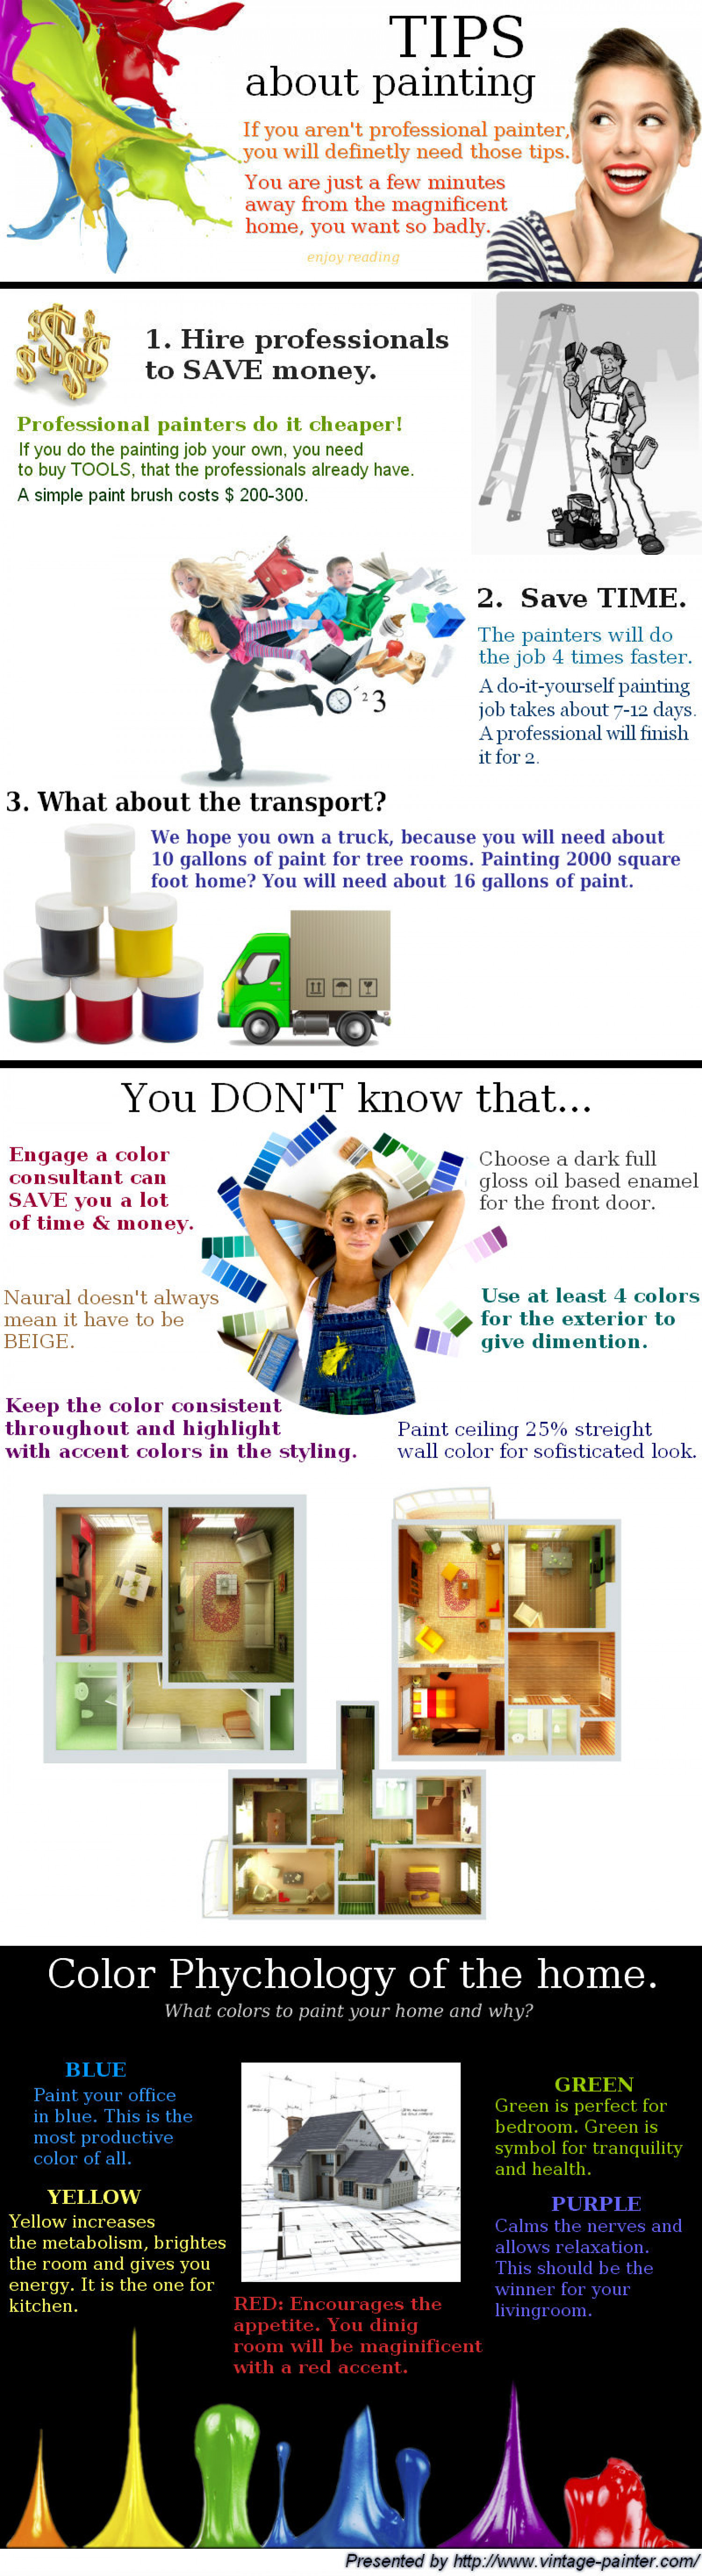 Tips About Painting Infographic